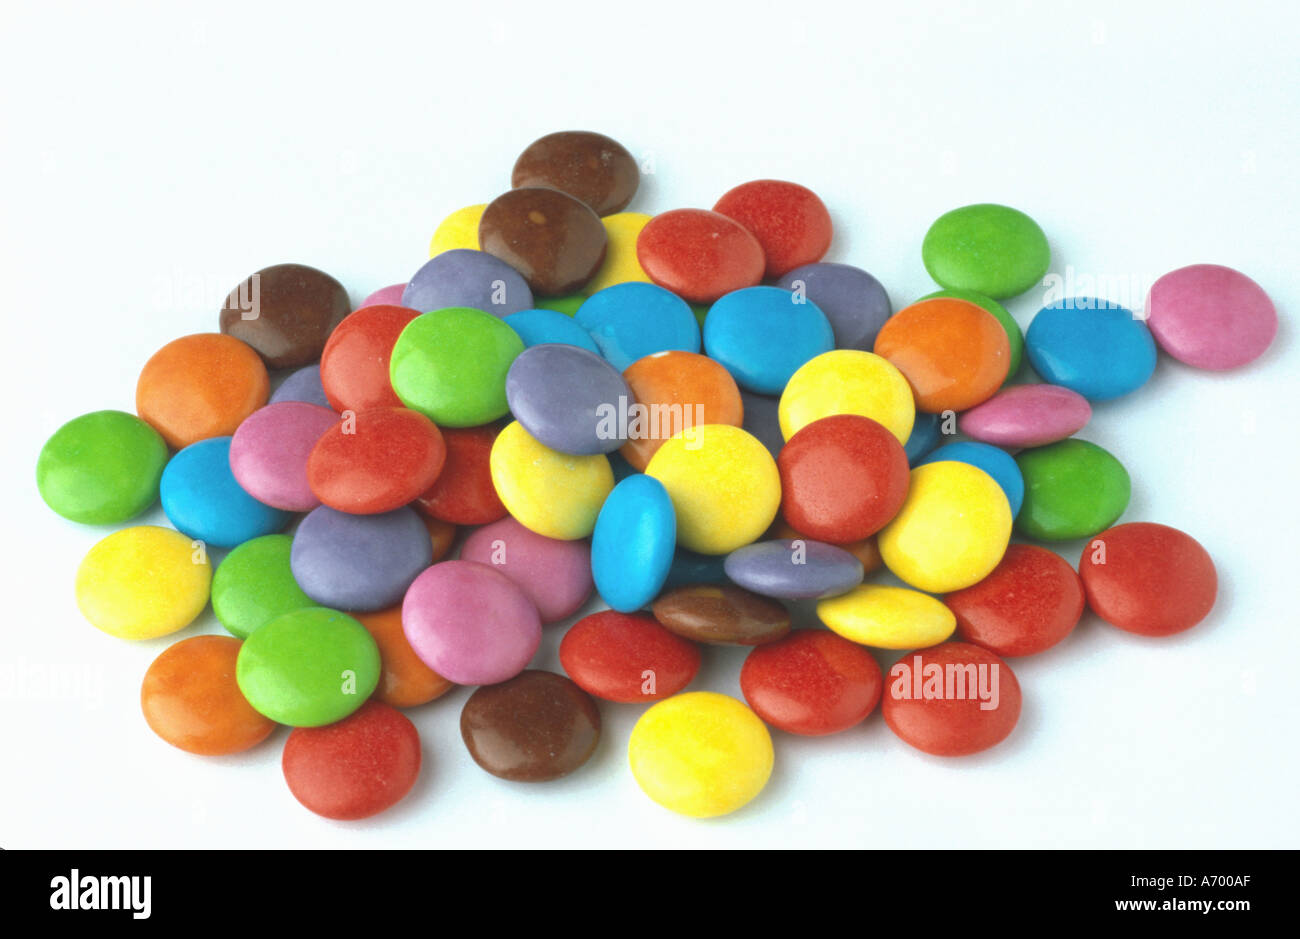 food sweets colored choco drops smarties Stock Photo: 458927 - Alamy